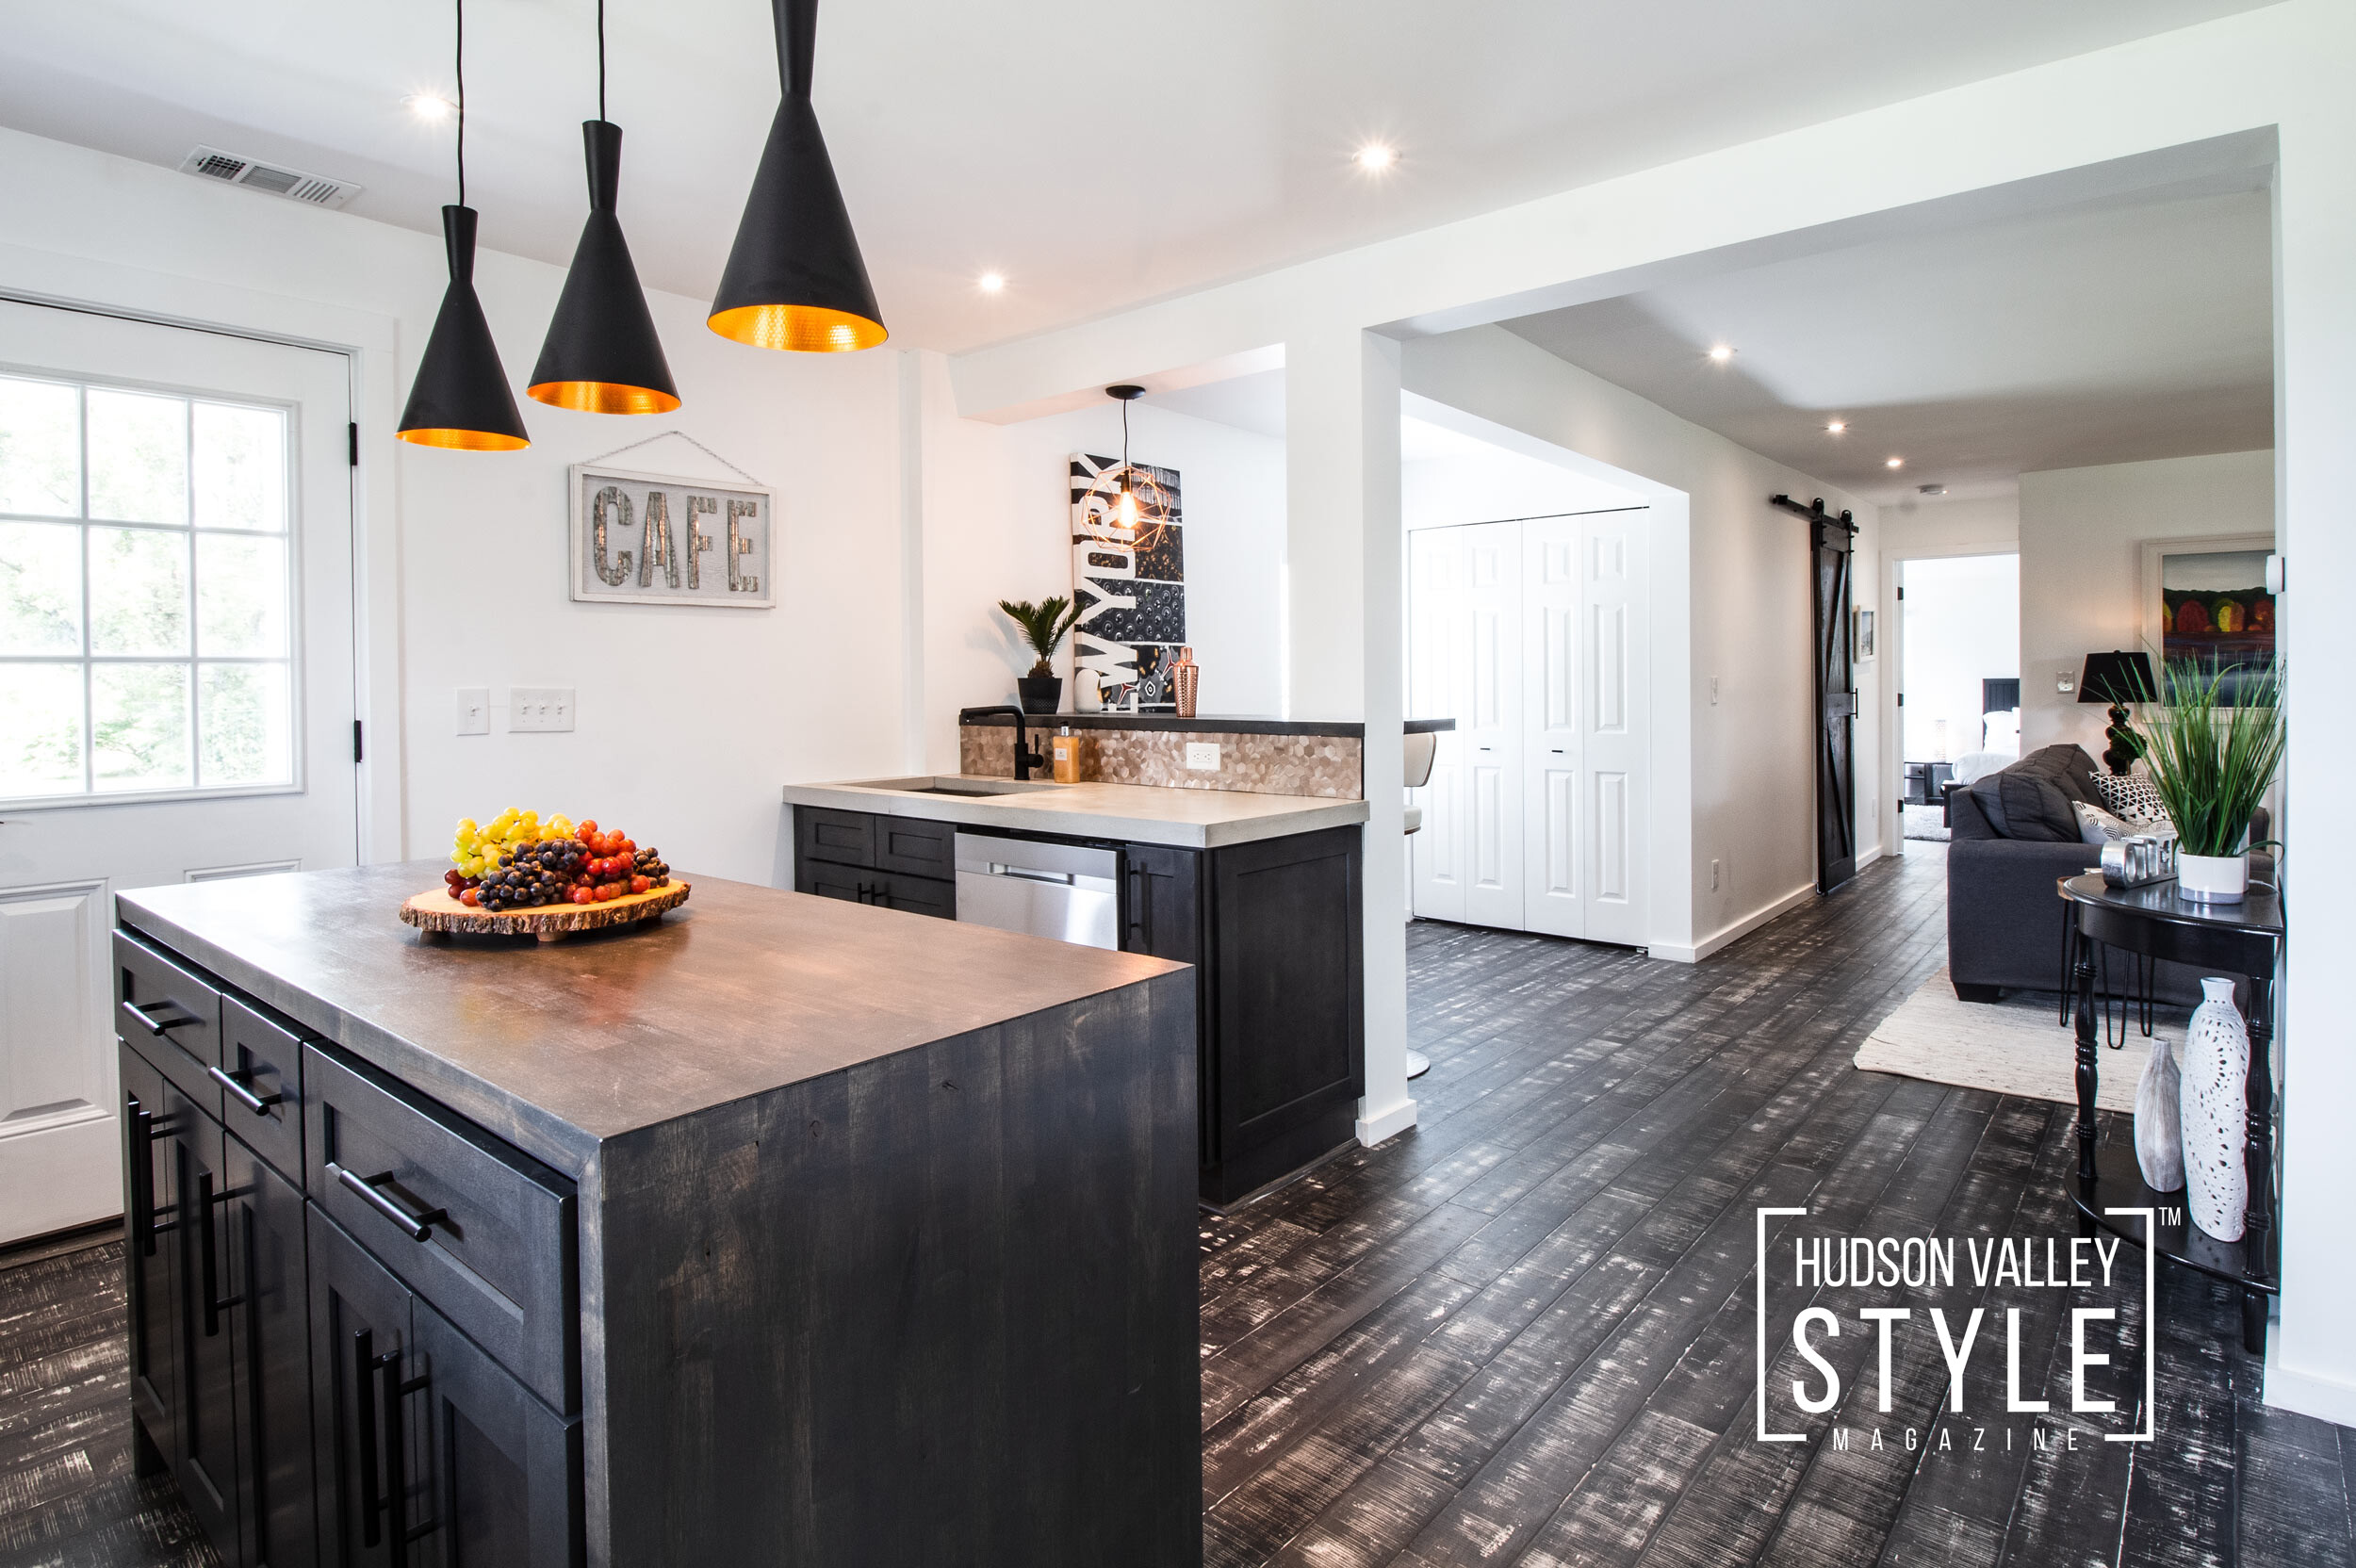 Hudson Valley Farmhouse – Residential Real Estate Photography Project in Marlboro, NYfor theAlexander Maxwell Realty – Best Realtors in Hudson Valley–Dutchess County – Hudson Valley – Duncan Avenue Studios Real Estate Photography